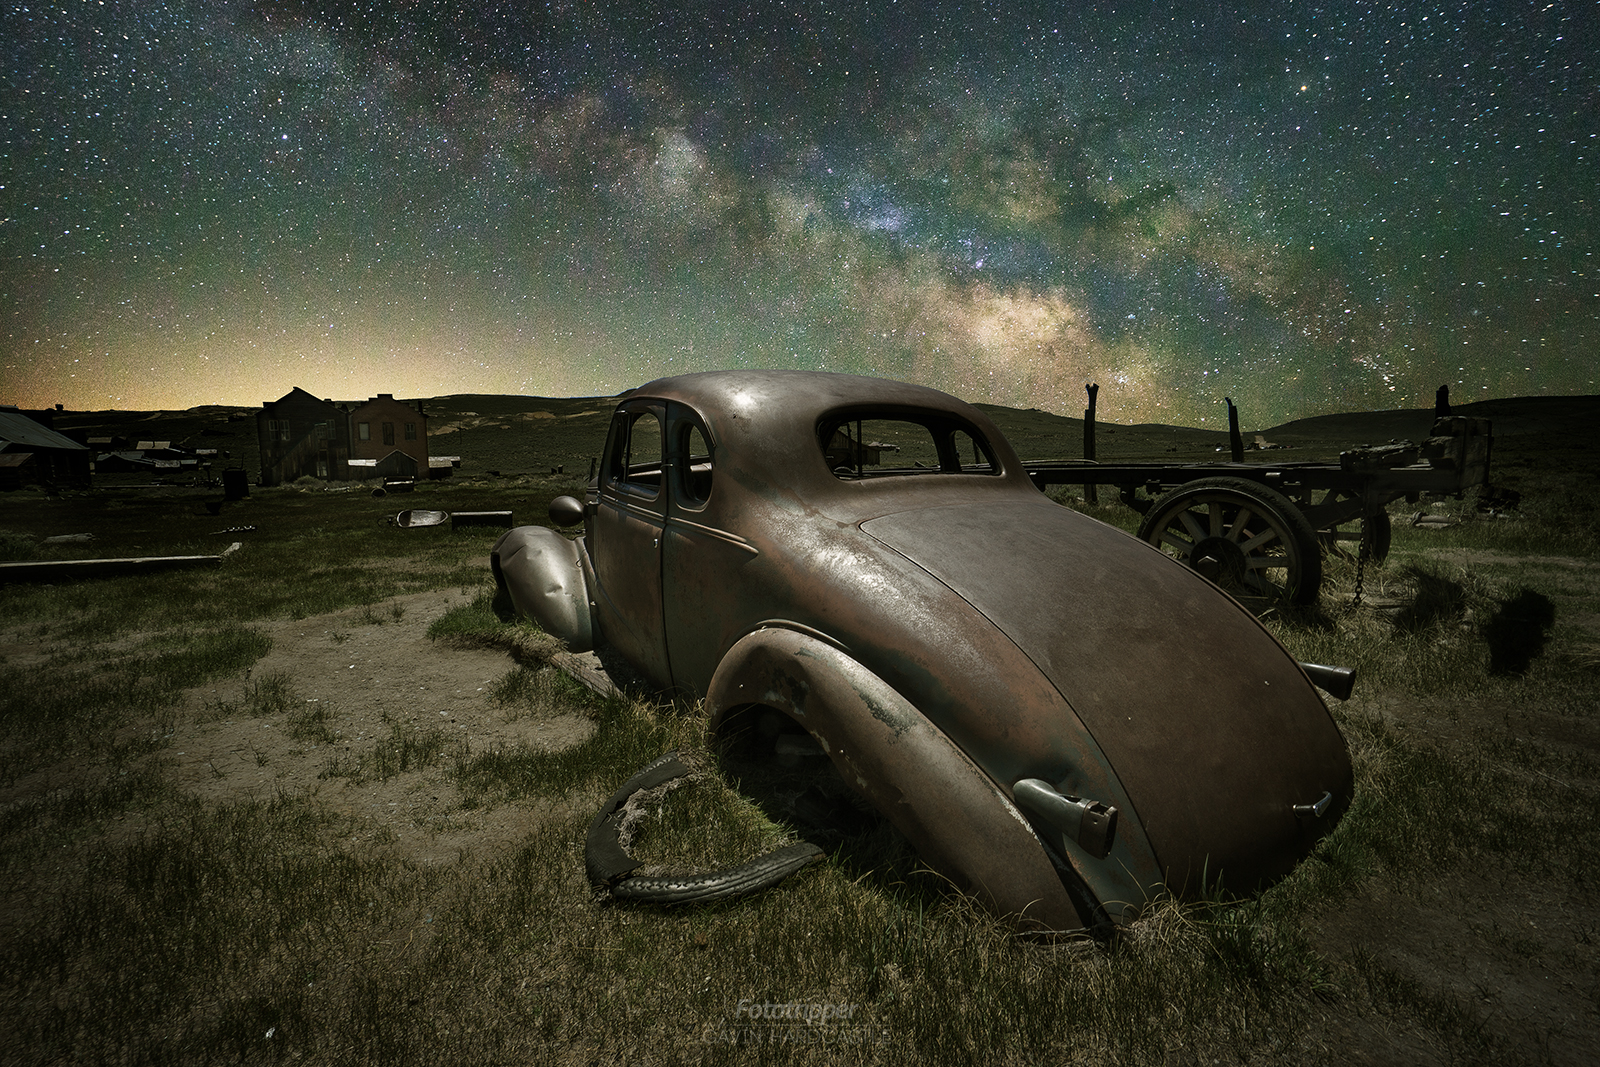 'Parked for Eternity' - Bodie Ghost Town